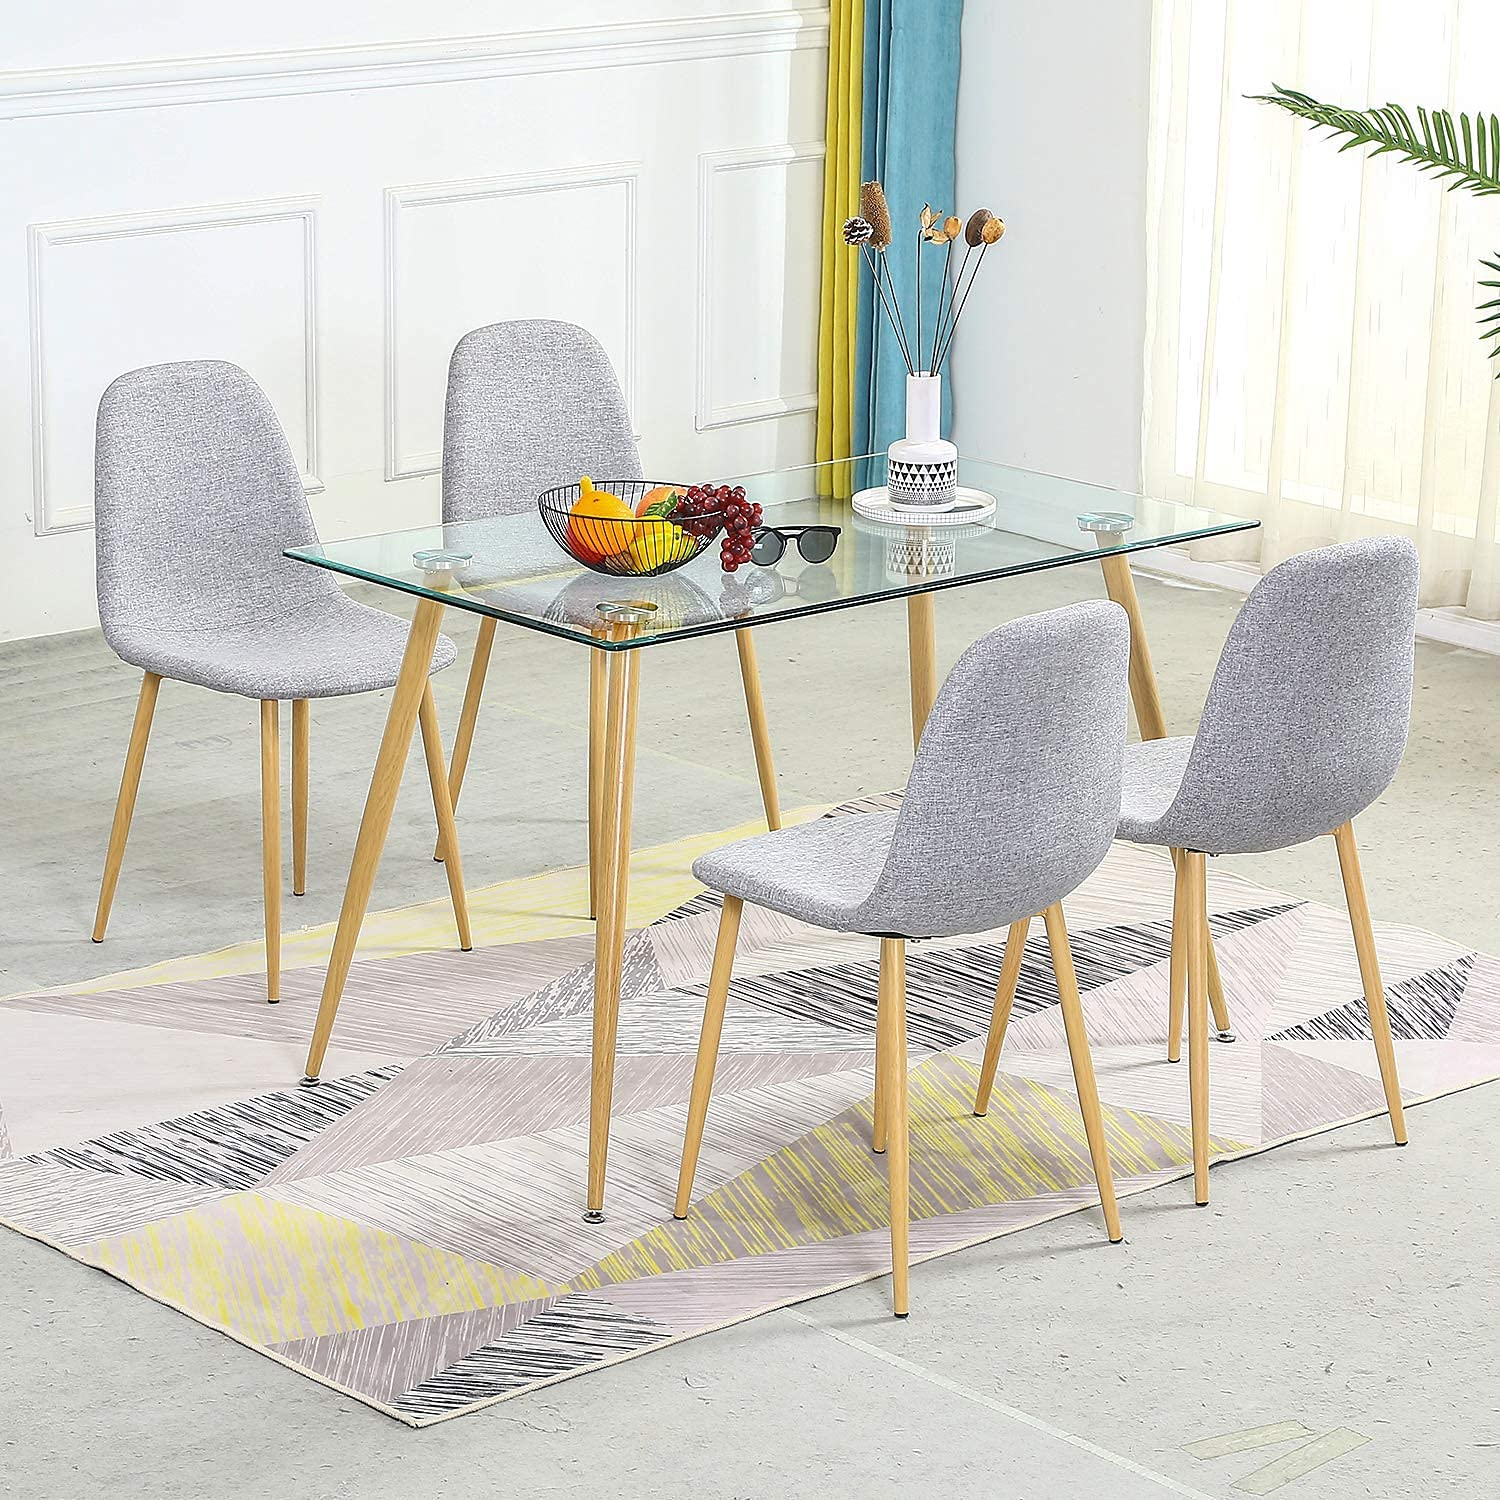 Tempered Glass Top Dining Table, Modern Dining Room Table And Chairs Set